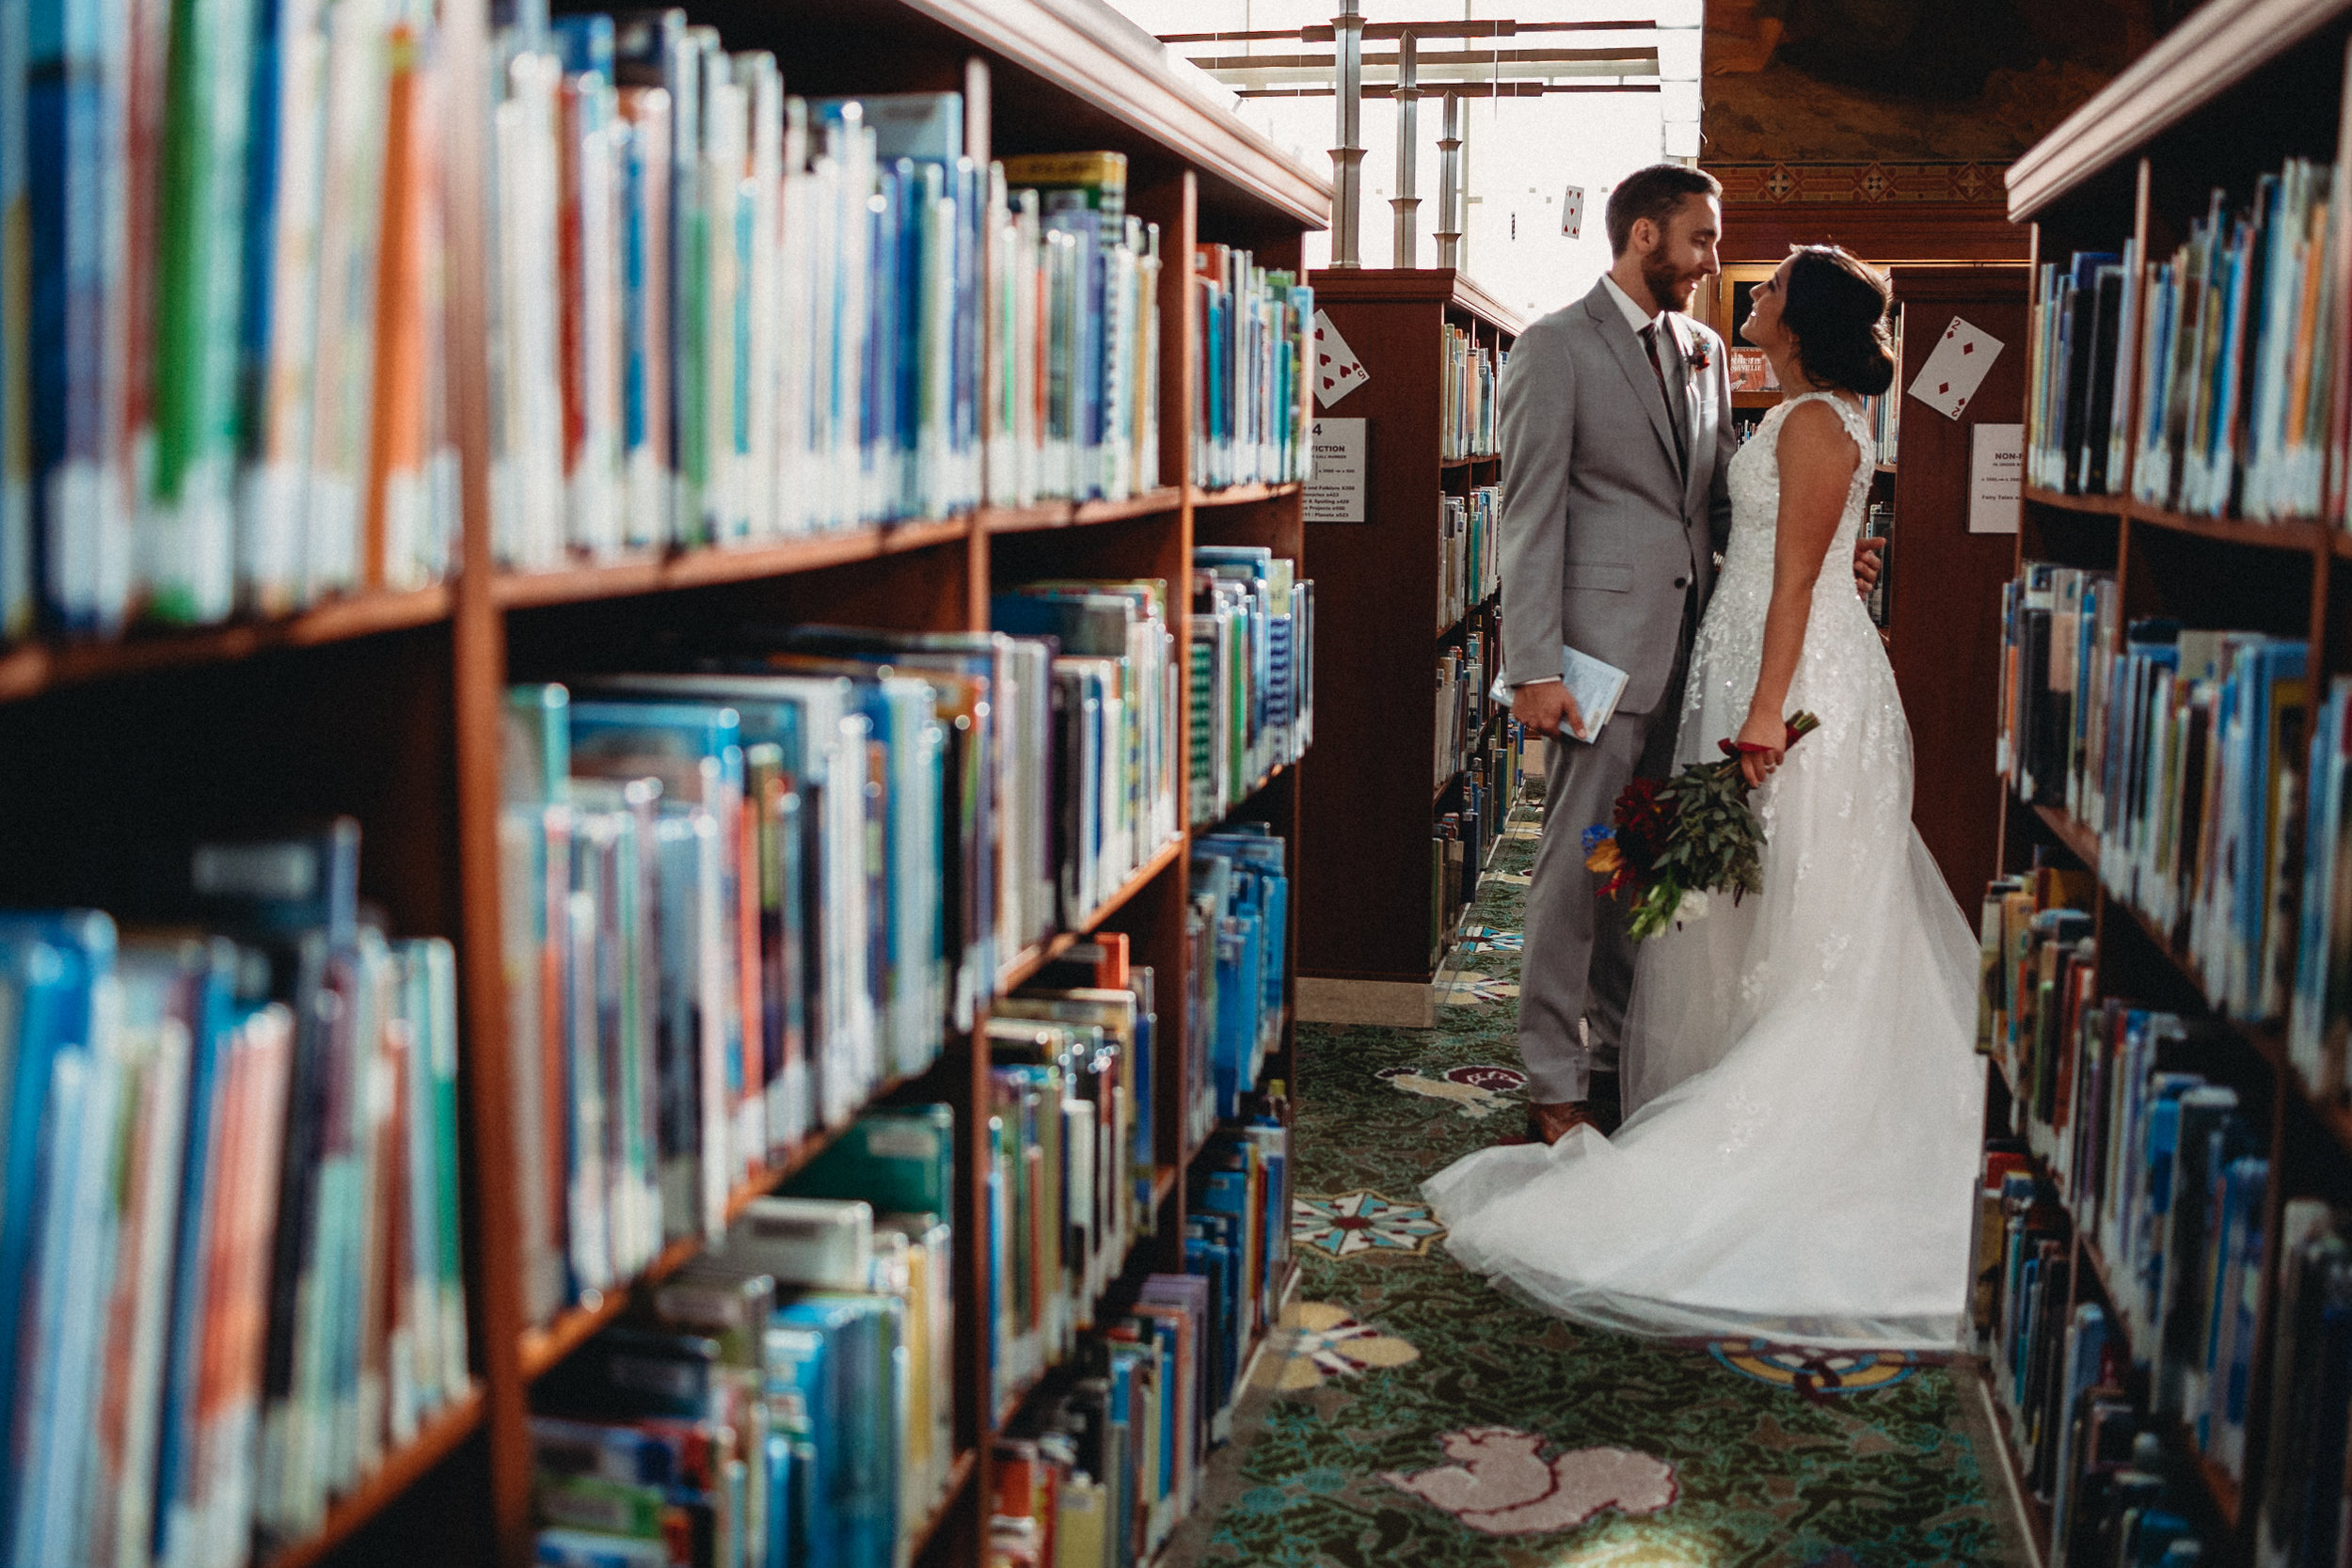 dtla-central-library-wedding-rebeccaylasotras-11.jpg